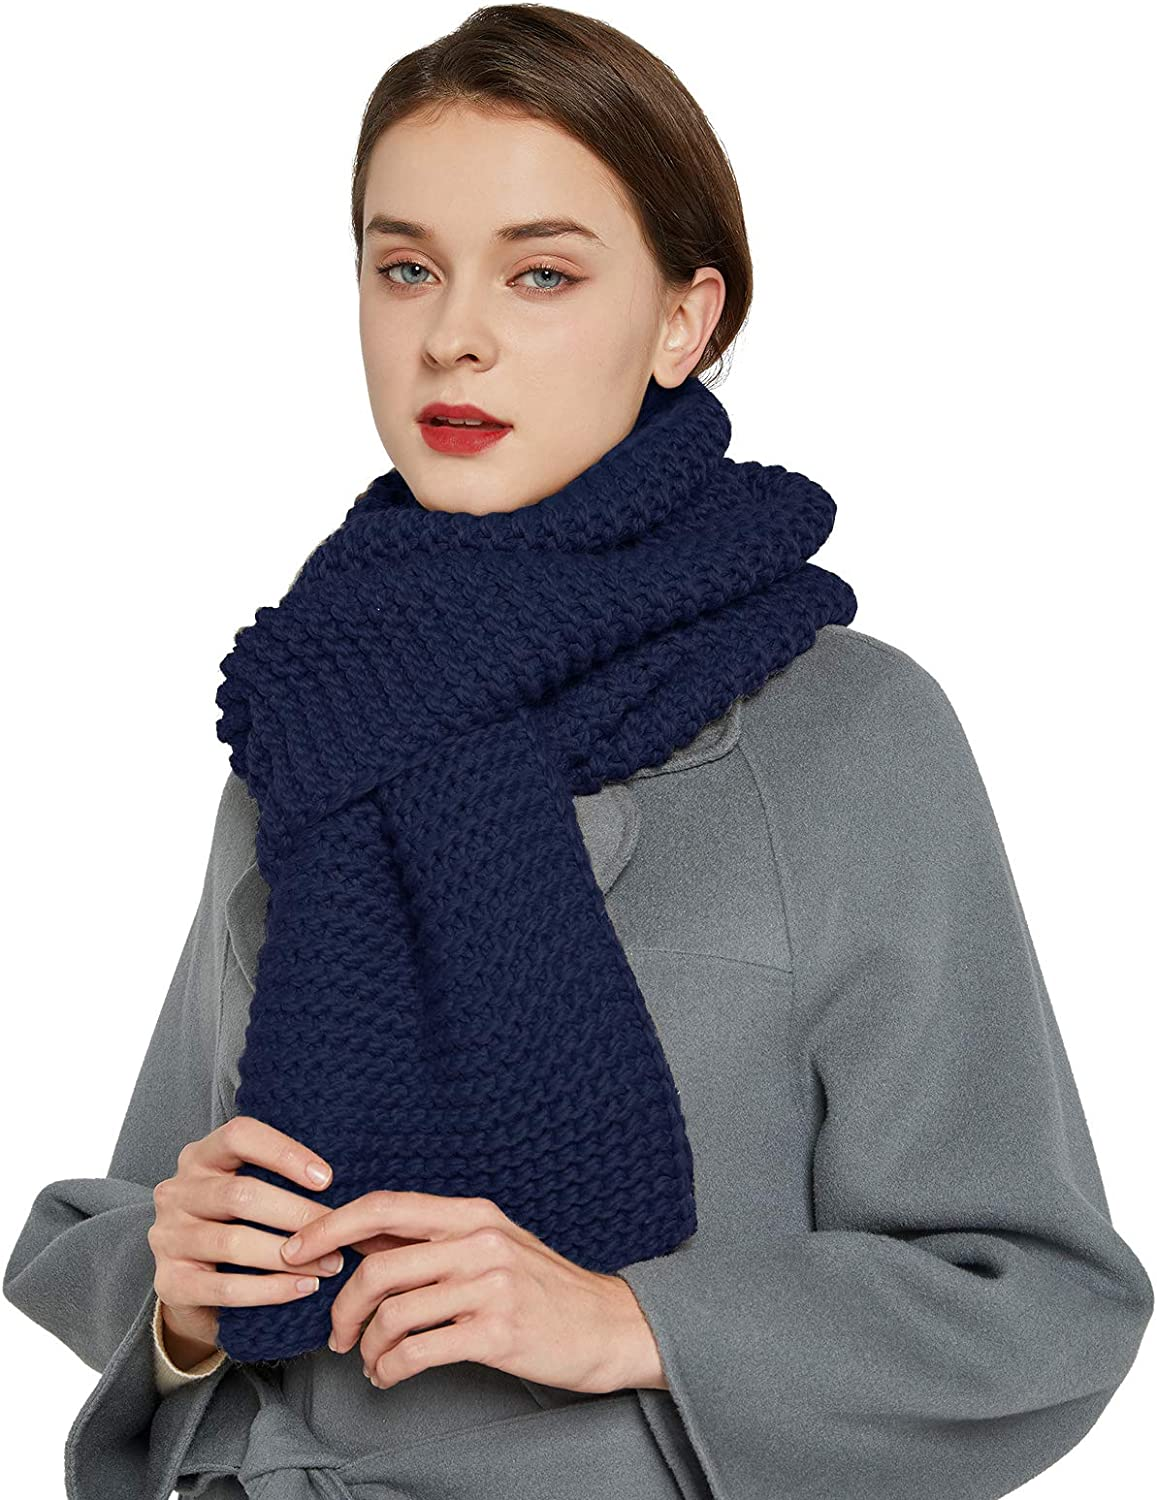 Surblue Winter Knit Scarf Warm Thick pattern Long for men and women for outdoors